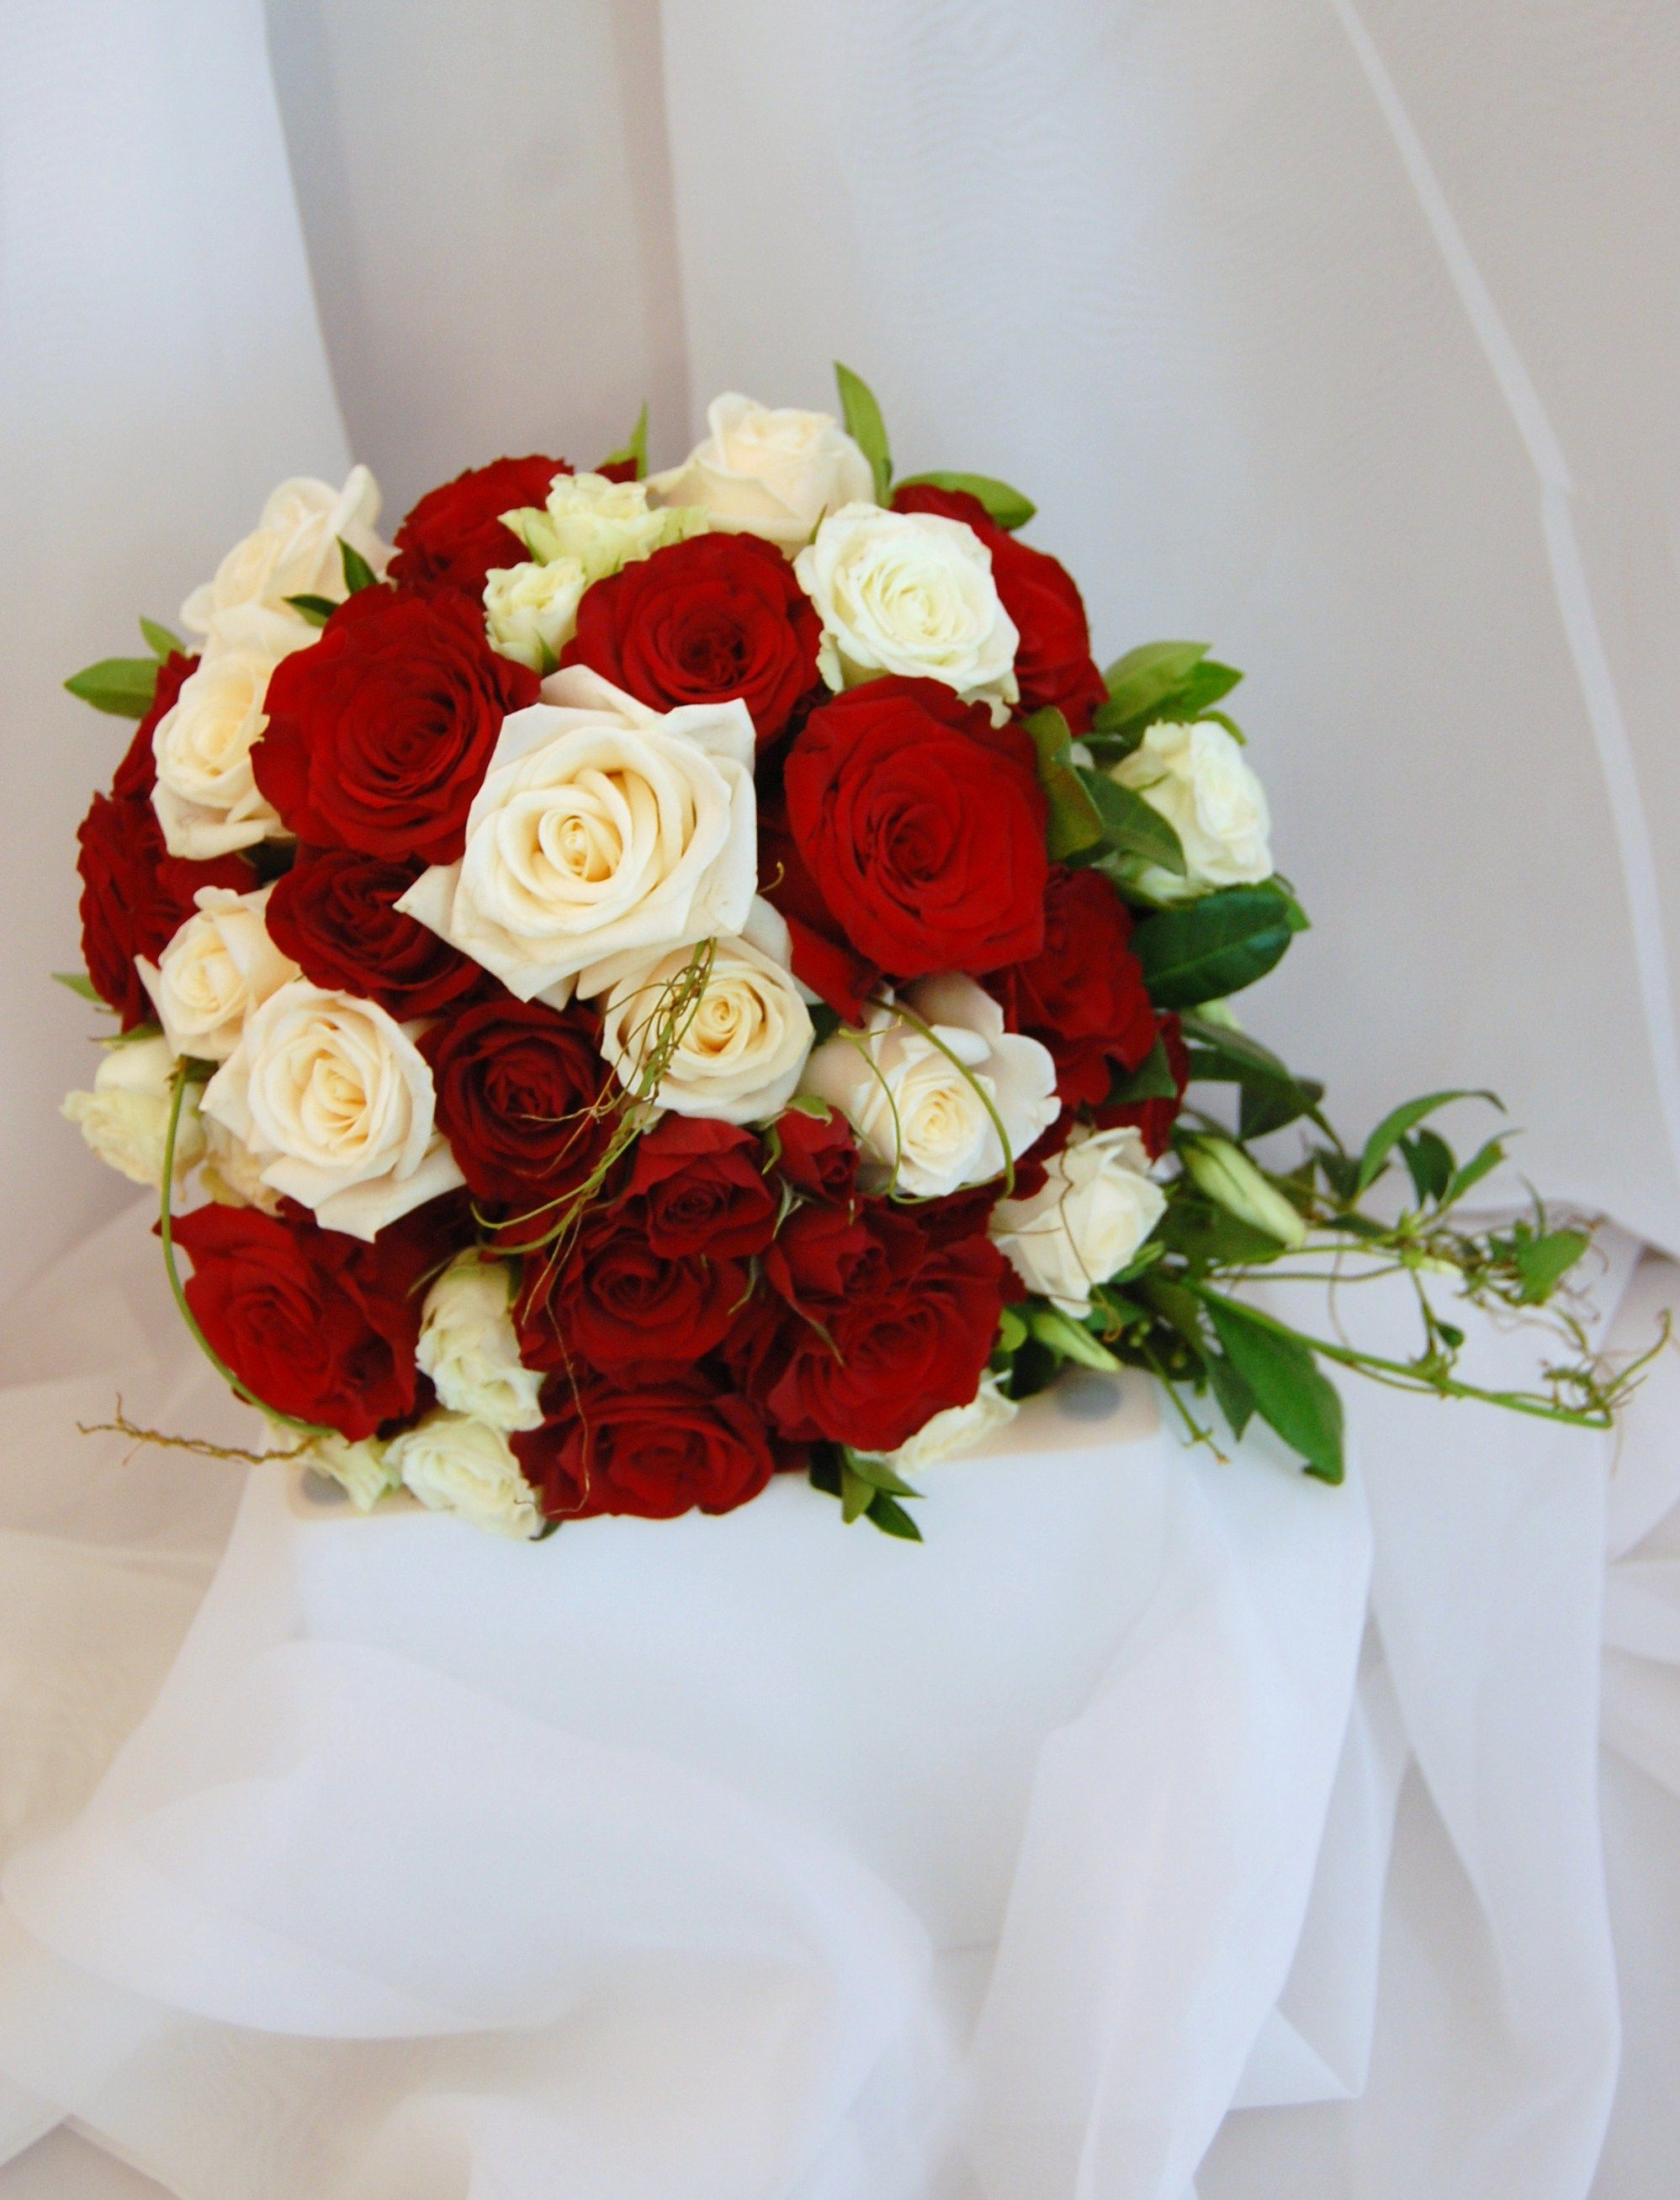 Rose bridal bouquets back next picture of bridal bouquet red